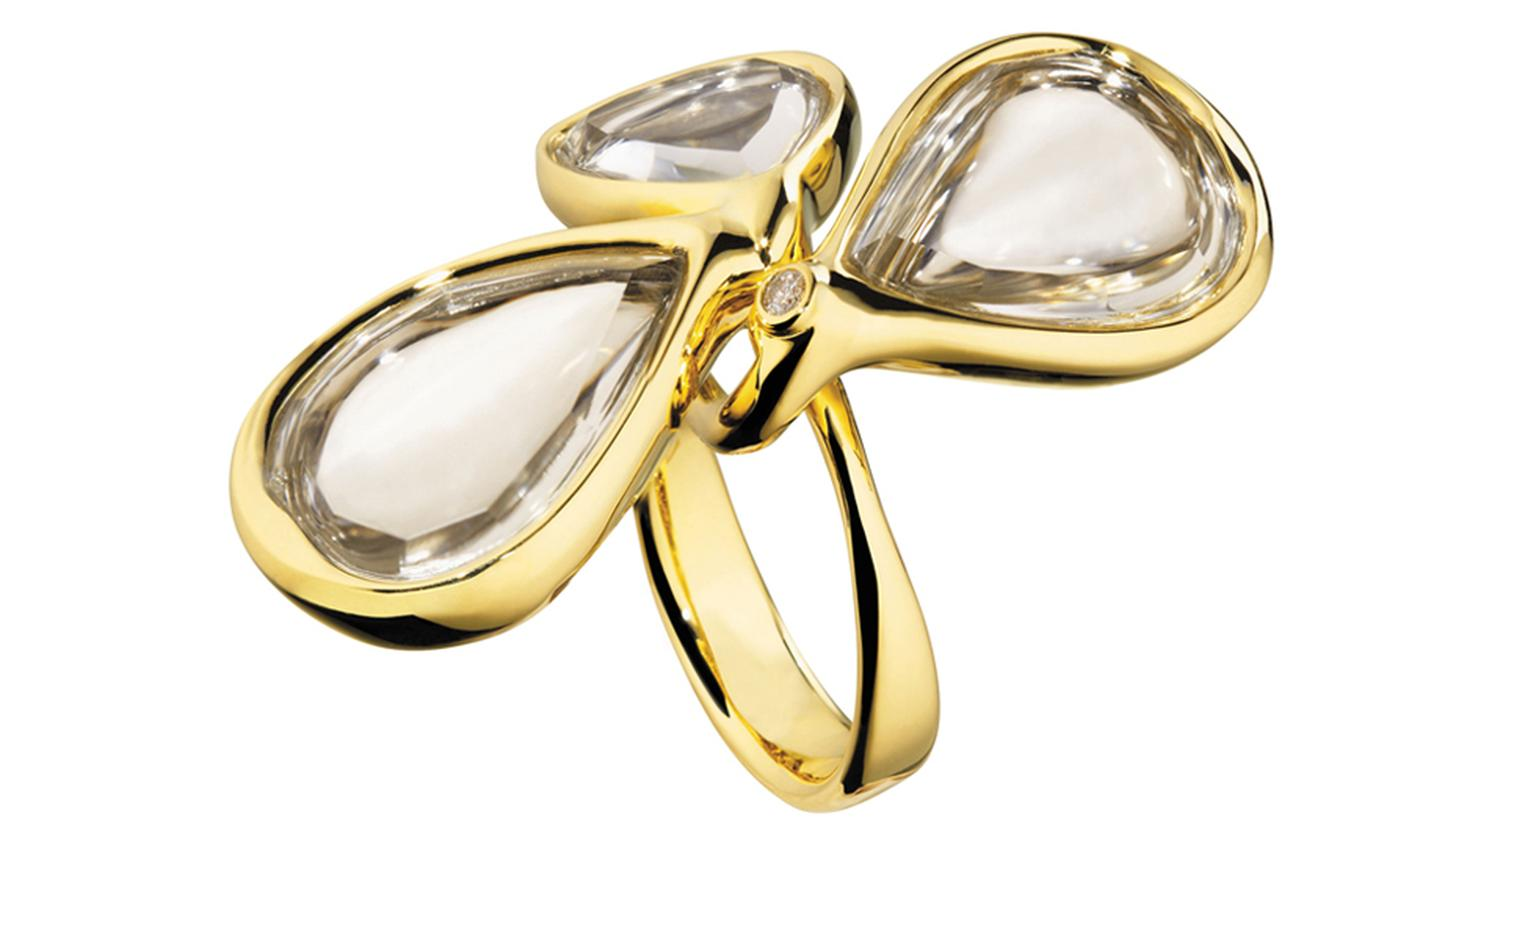 Diane von Furstenberg by H Stern. Sutras bold Ring in yellow gold, rock crytal and a diamond. Price from £5,500